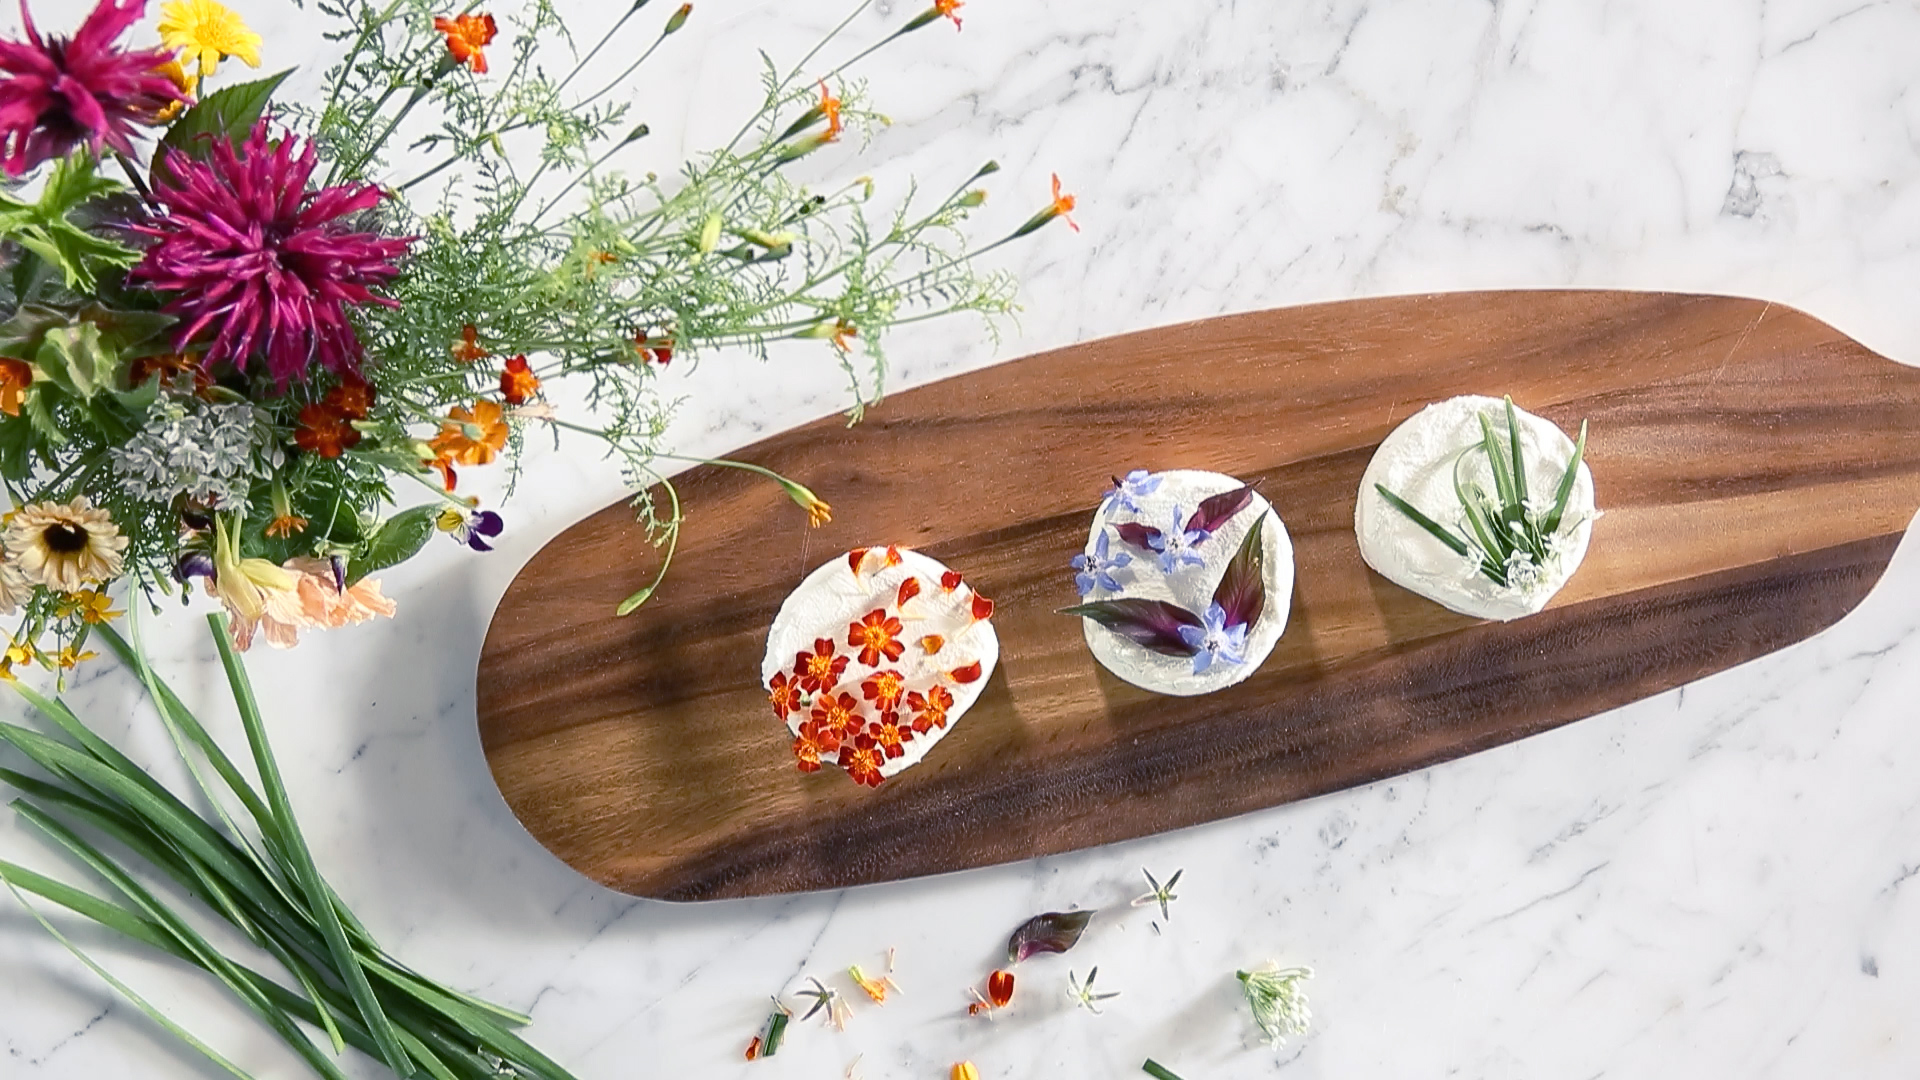 How to Make a Floral Cheese Plate